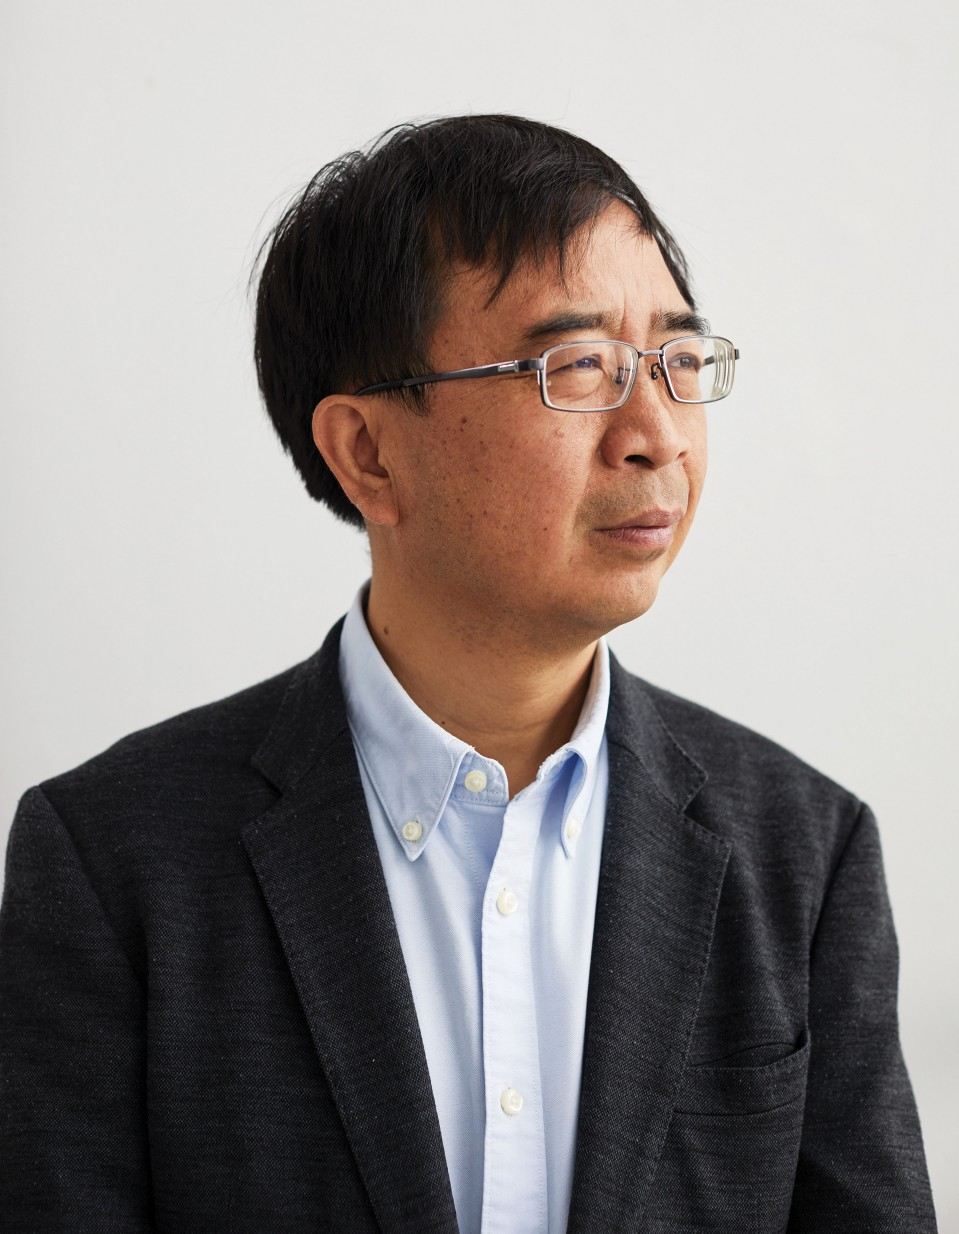 Photograph of Jian-Wei Pan